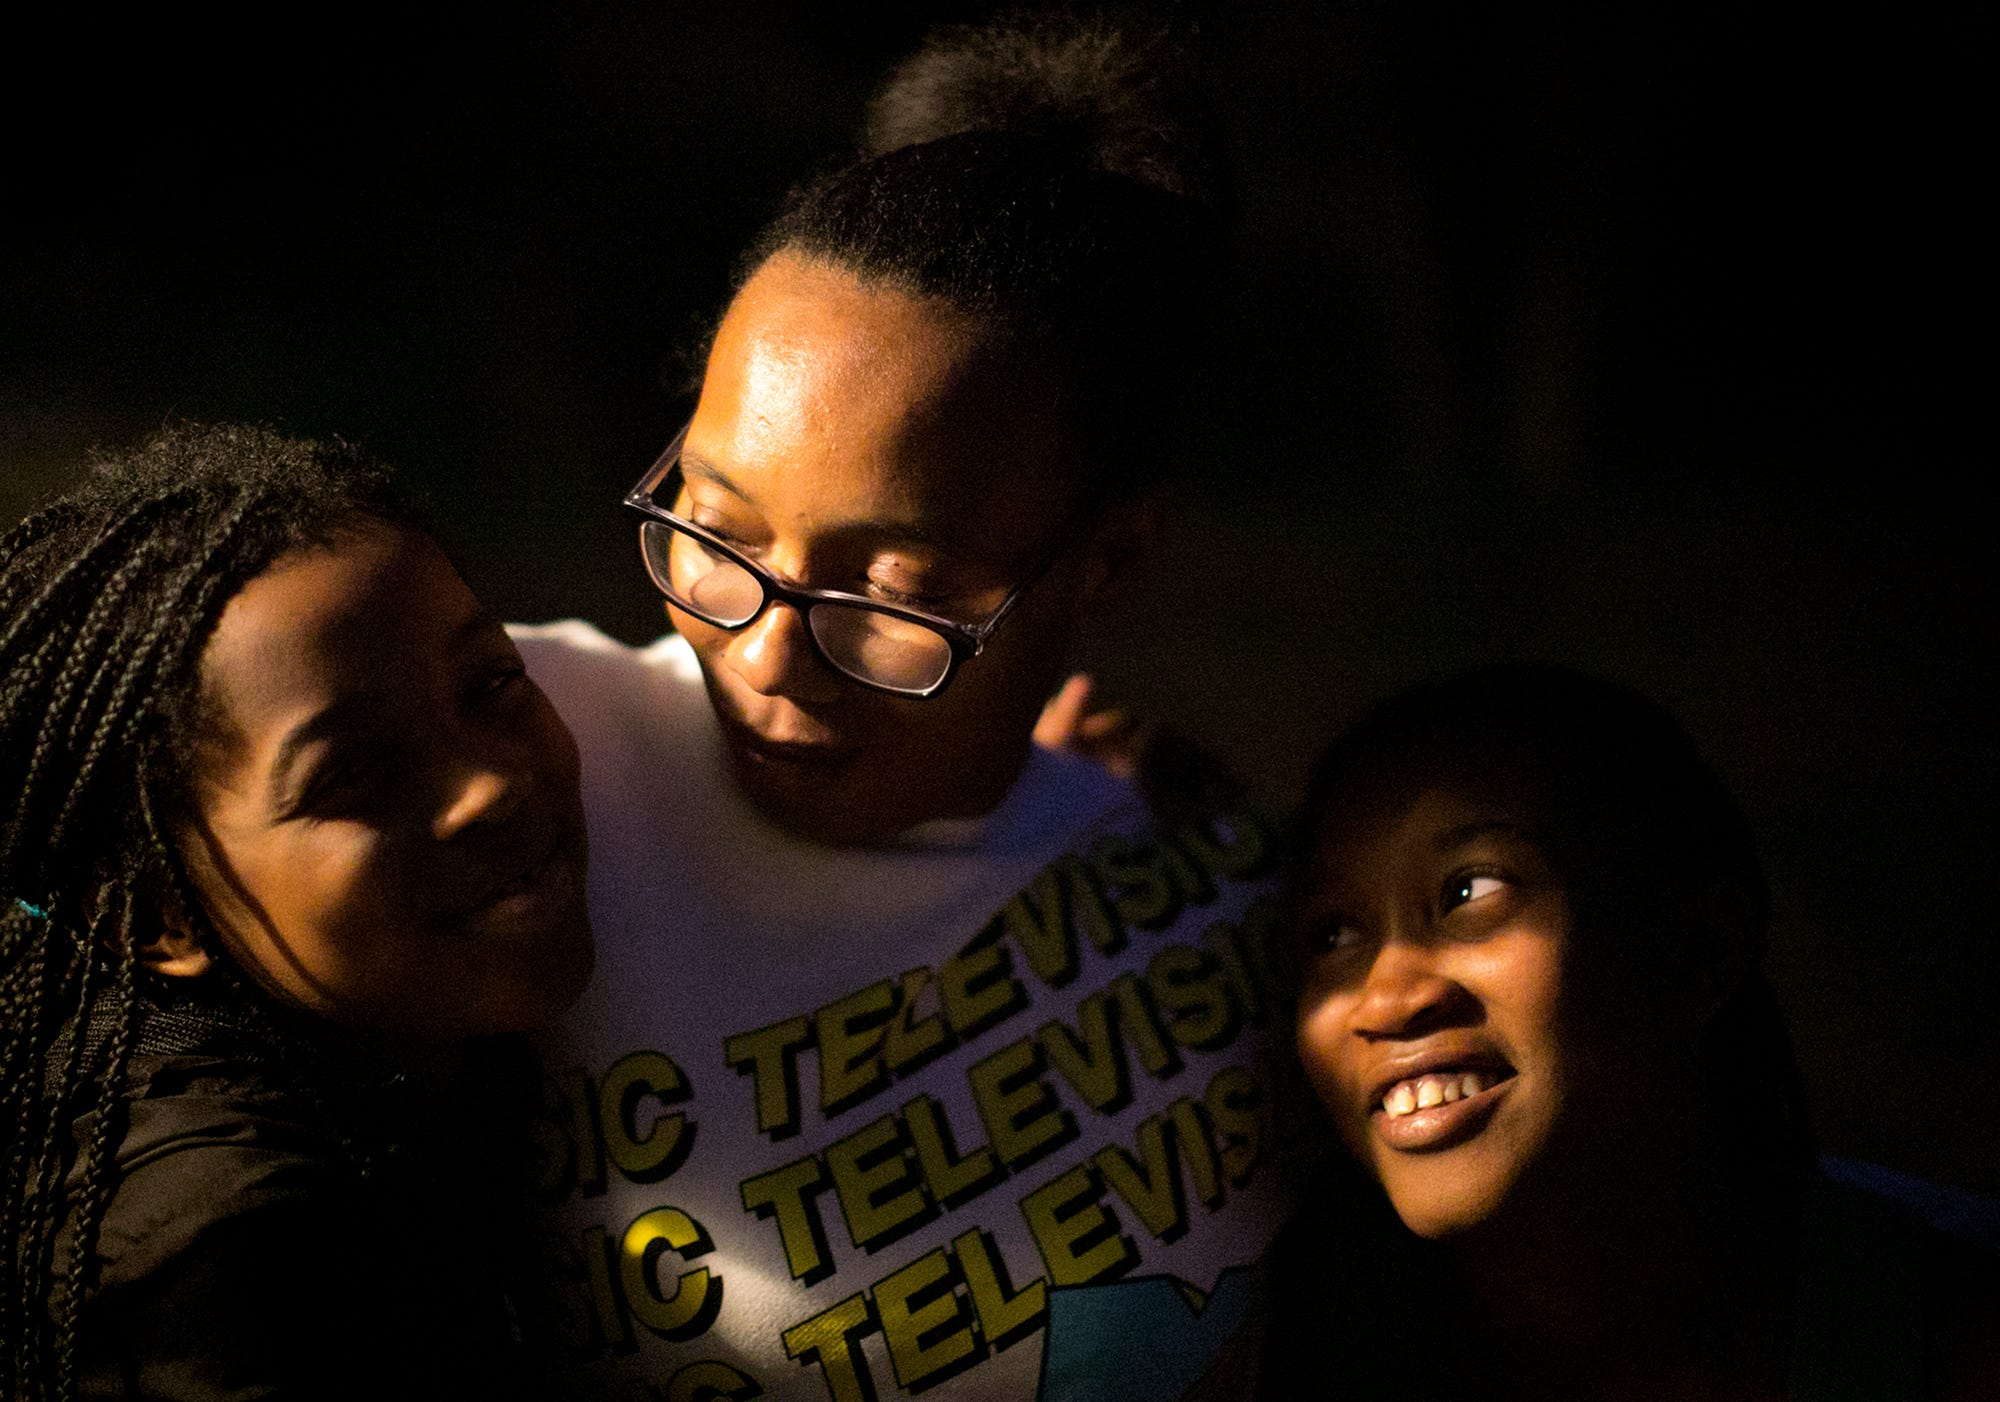 Armani Wells, 13, right and Arihanna Wells, 8, left, hug their mother, Cherise Harris, on their back porch in Painesville, Ohio, in October 2020. The family house is a block from a city-owned power plant, built in the 1800s, that still burns coal.